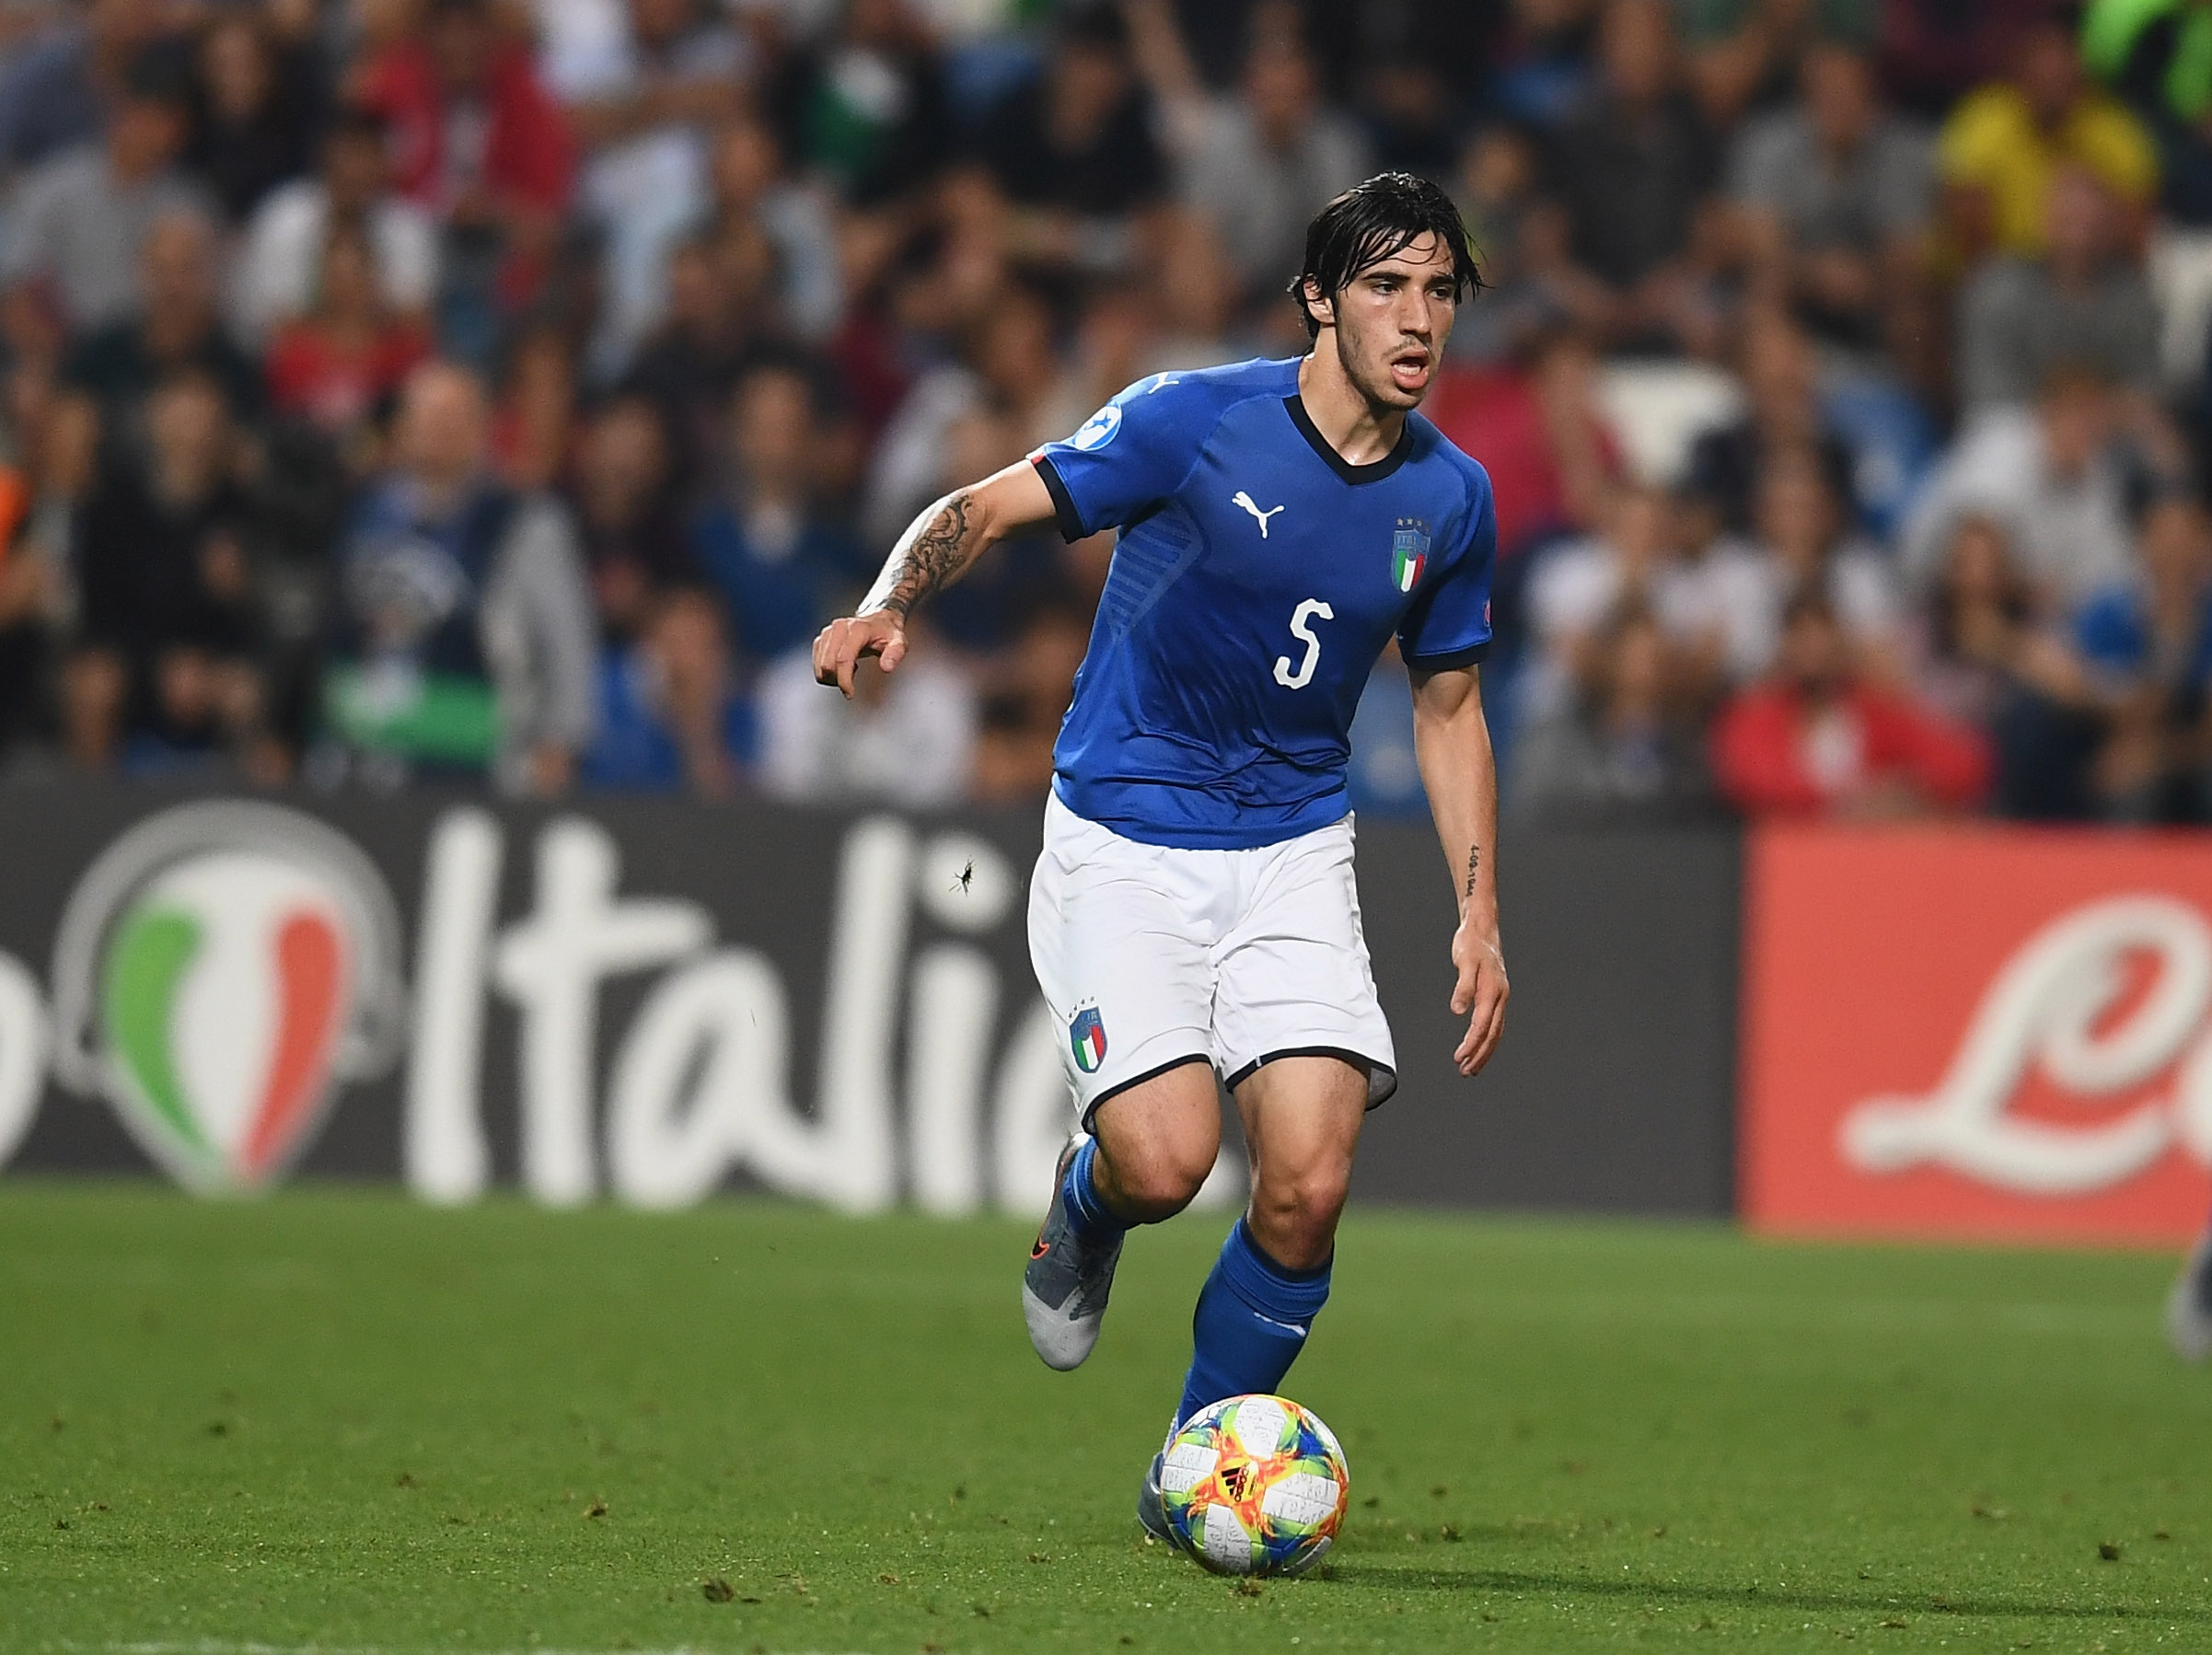 REGGIO NELL'EMILIA, ITALY - JUNE 22:  Sandro Tonali of Italy in action during the 2019 UEFA U-21 Group A match between Belgium and Italy at Stadio Citta del Tricolore on June 22, 2019 in Reggio nell'Emilia, Italy.  (Photo by Claudio Villa/Getty Images)